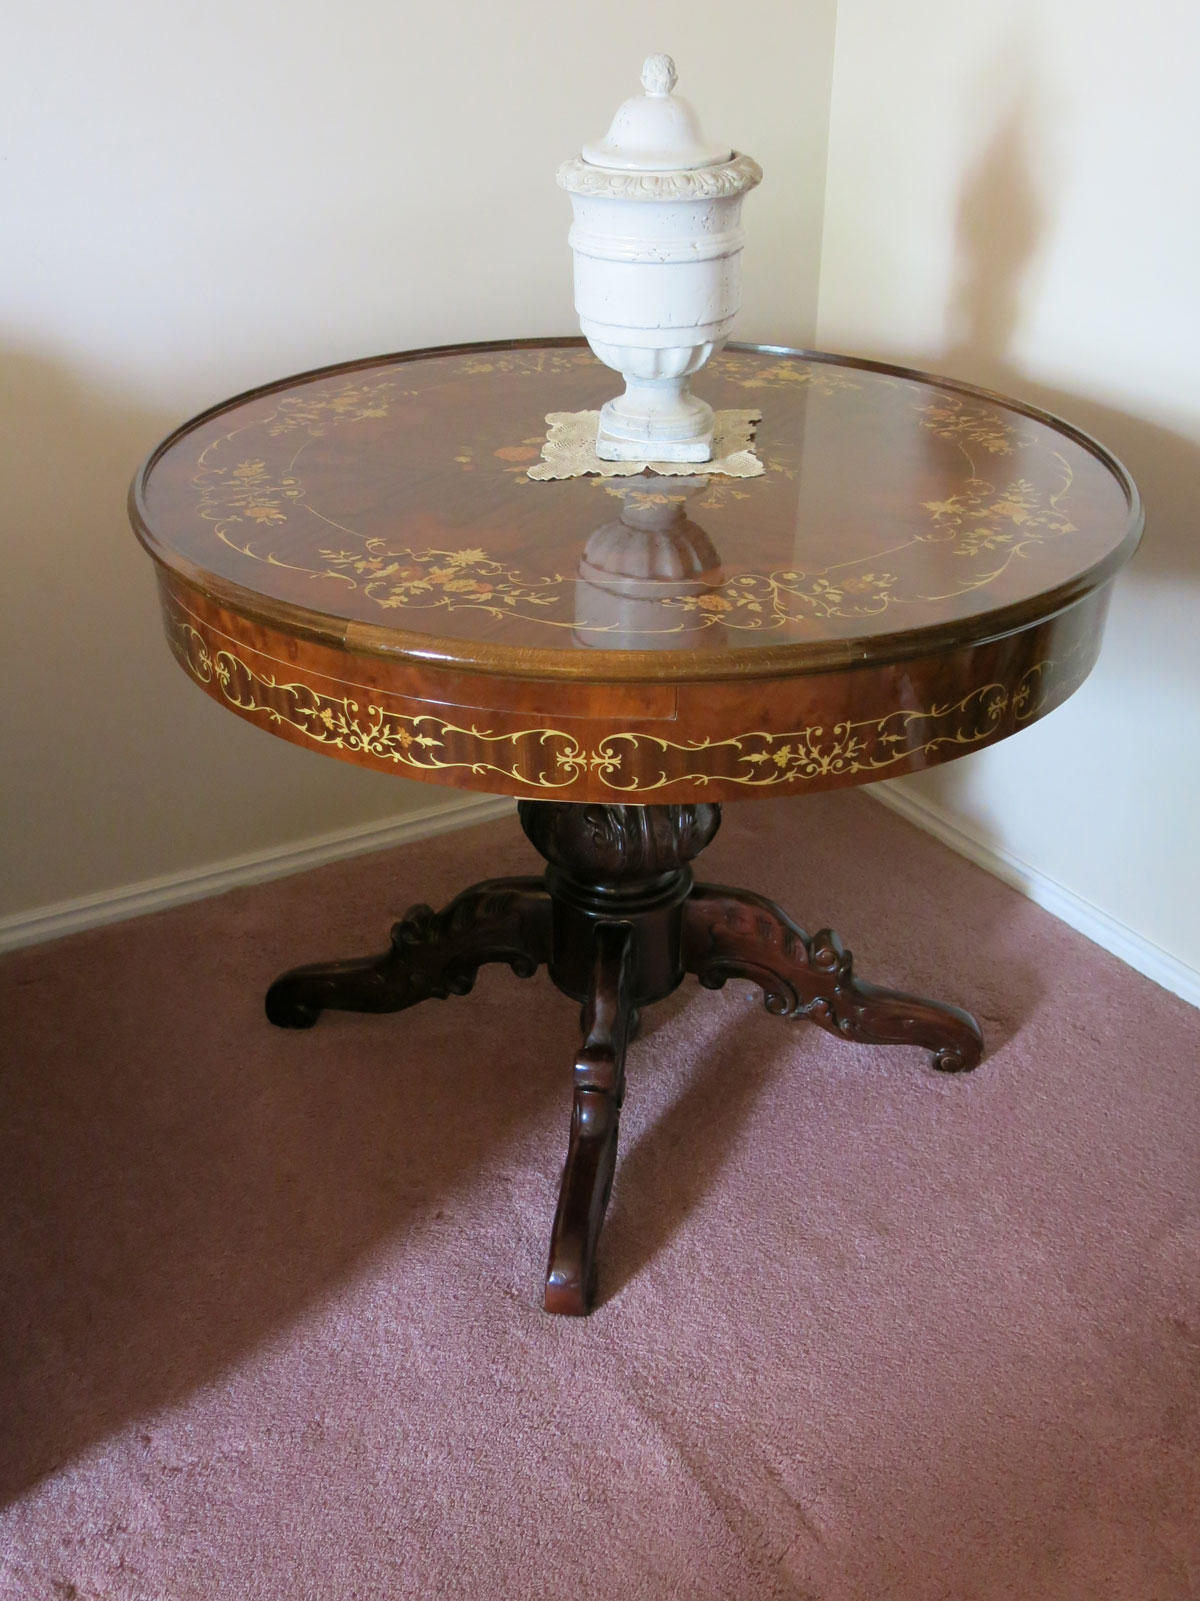 Handcrafted Italian in-laid wood table from Sorrento, Italy.